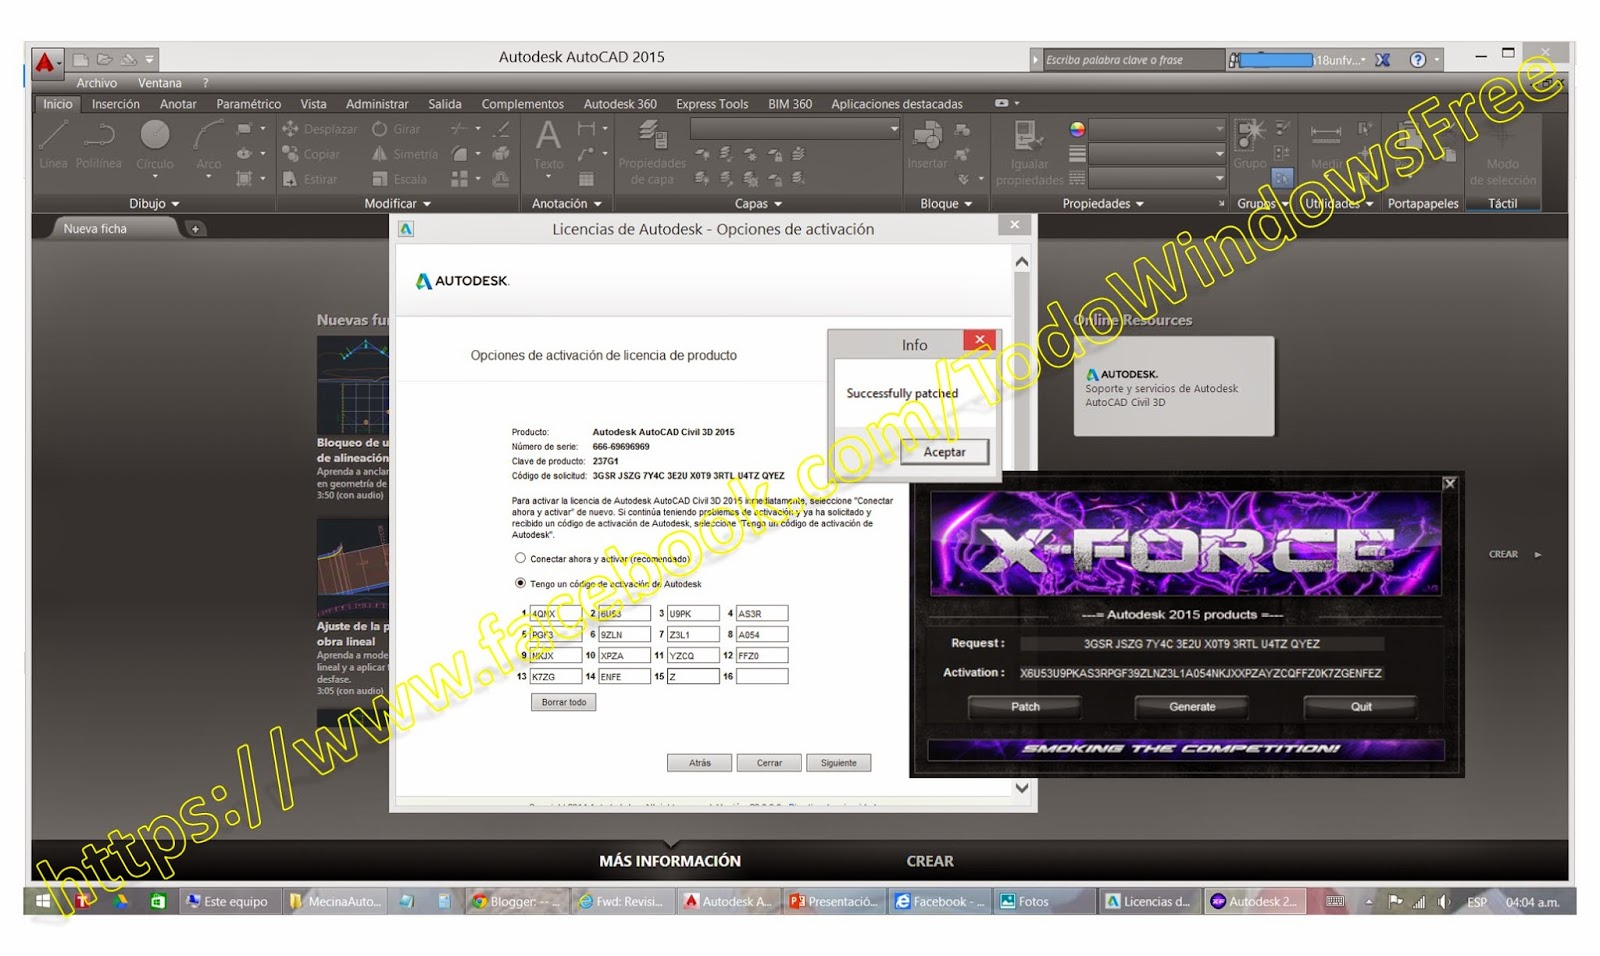 Xforce Keygen Autocad 2015 64 Bit Windows 8 2016 | voicesinhead.com